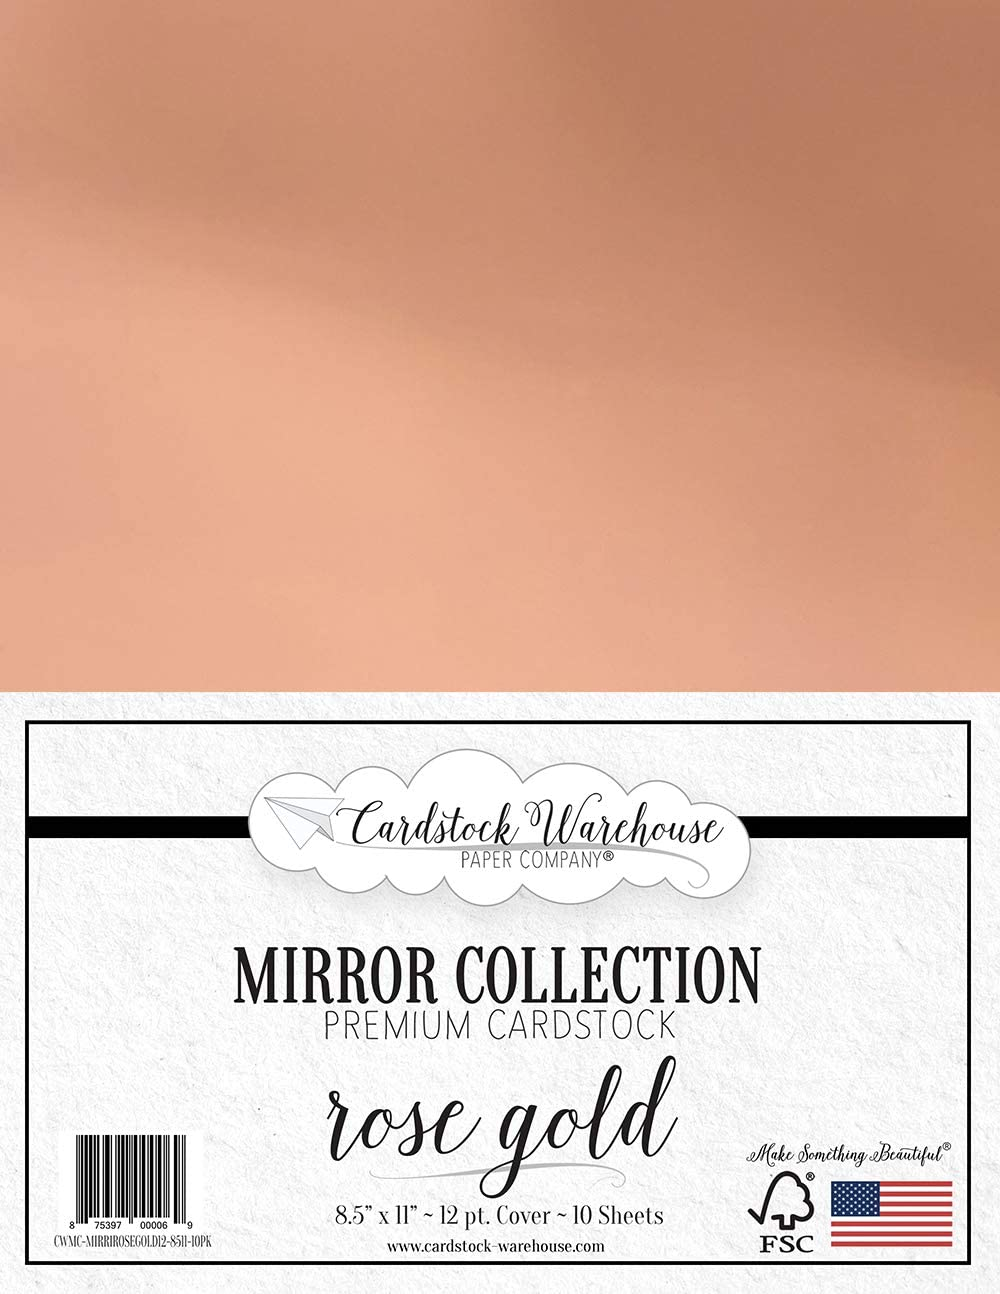 Mirror Rose Gold Foil Mirror Cardstock 8.5 X 11 inch - 100 lb / 12Pt - 10 Sheets from Cardstock Warehouse